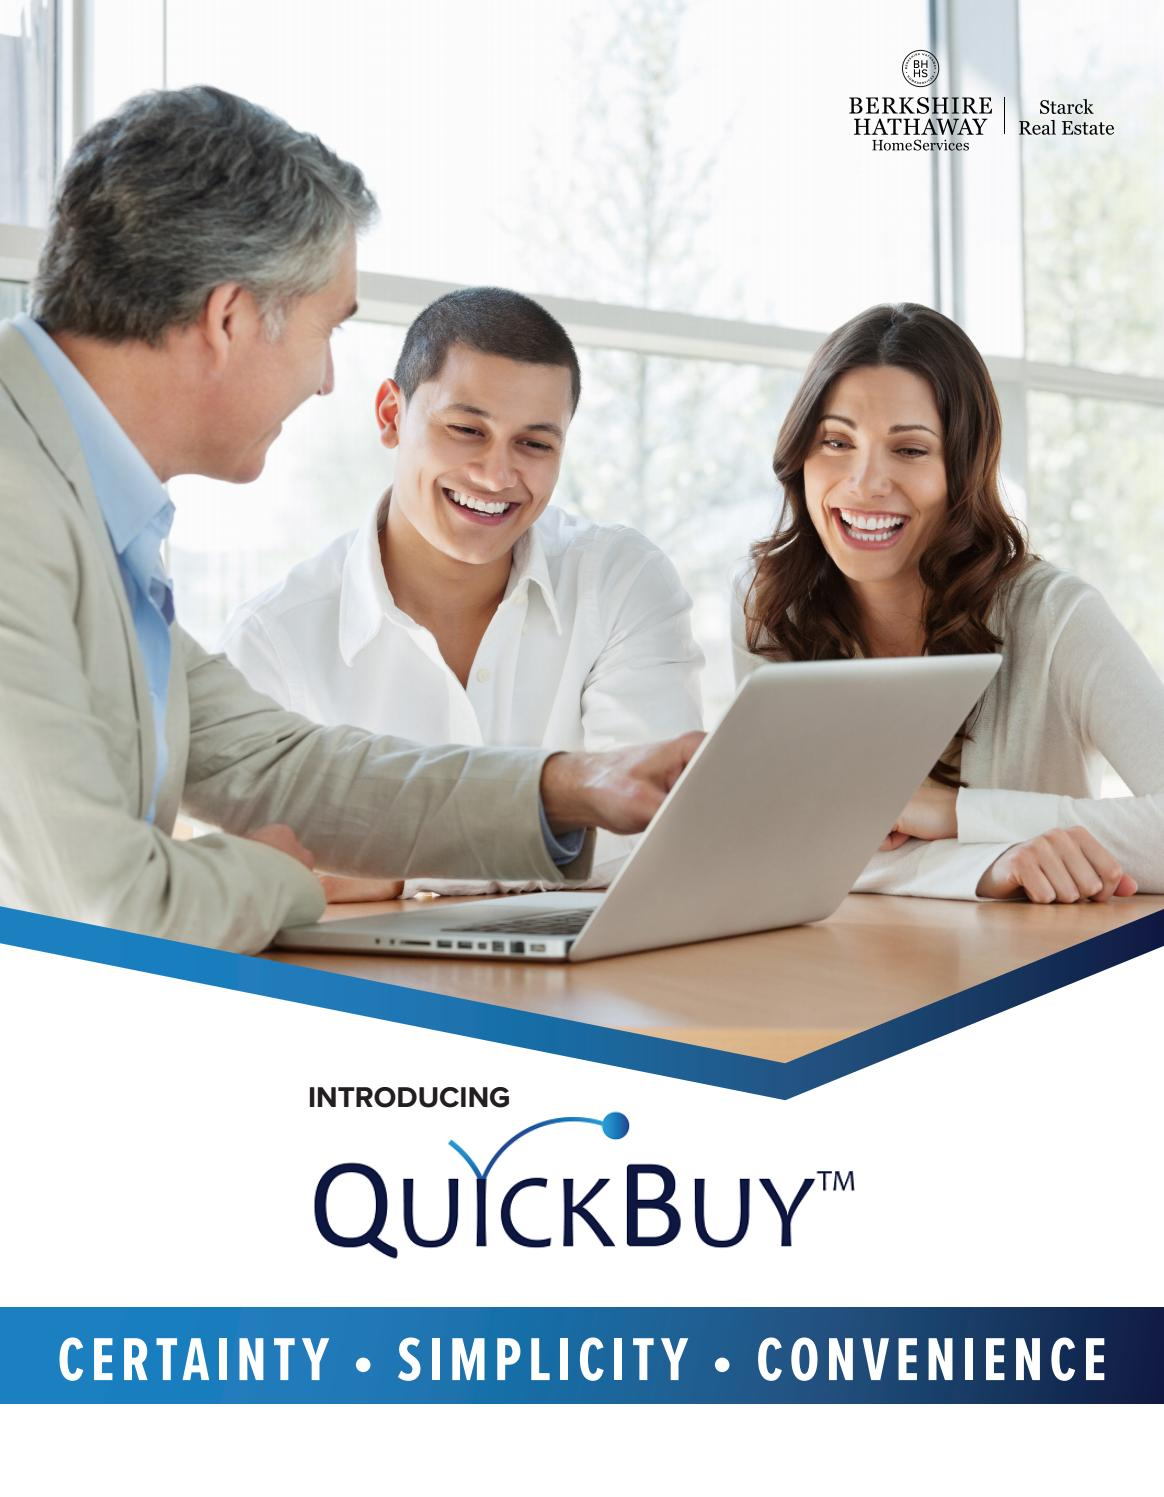 Bhhs Starck Real Estate S New Ibuy Program Powered By Movingstation By Starckre2 Issuu